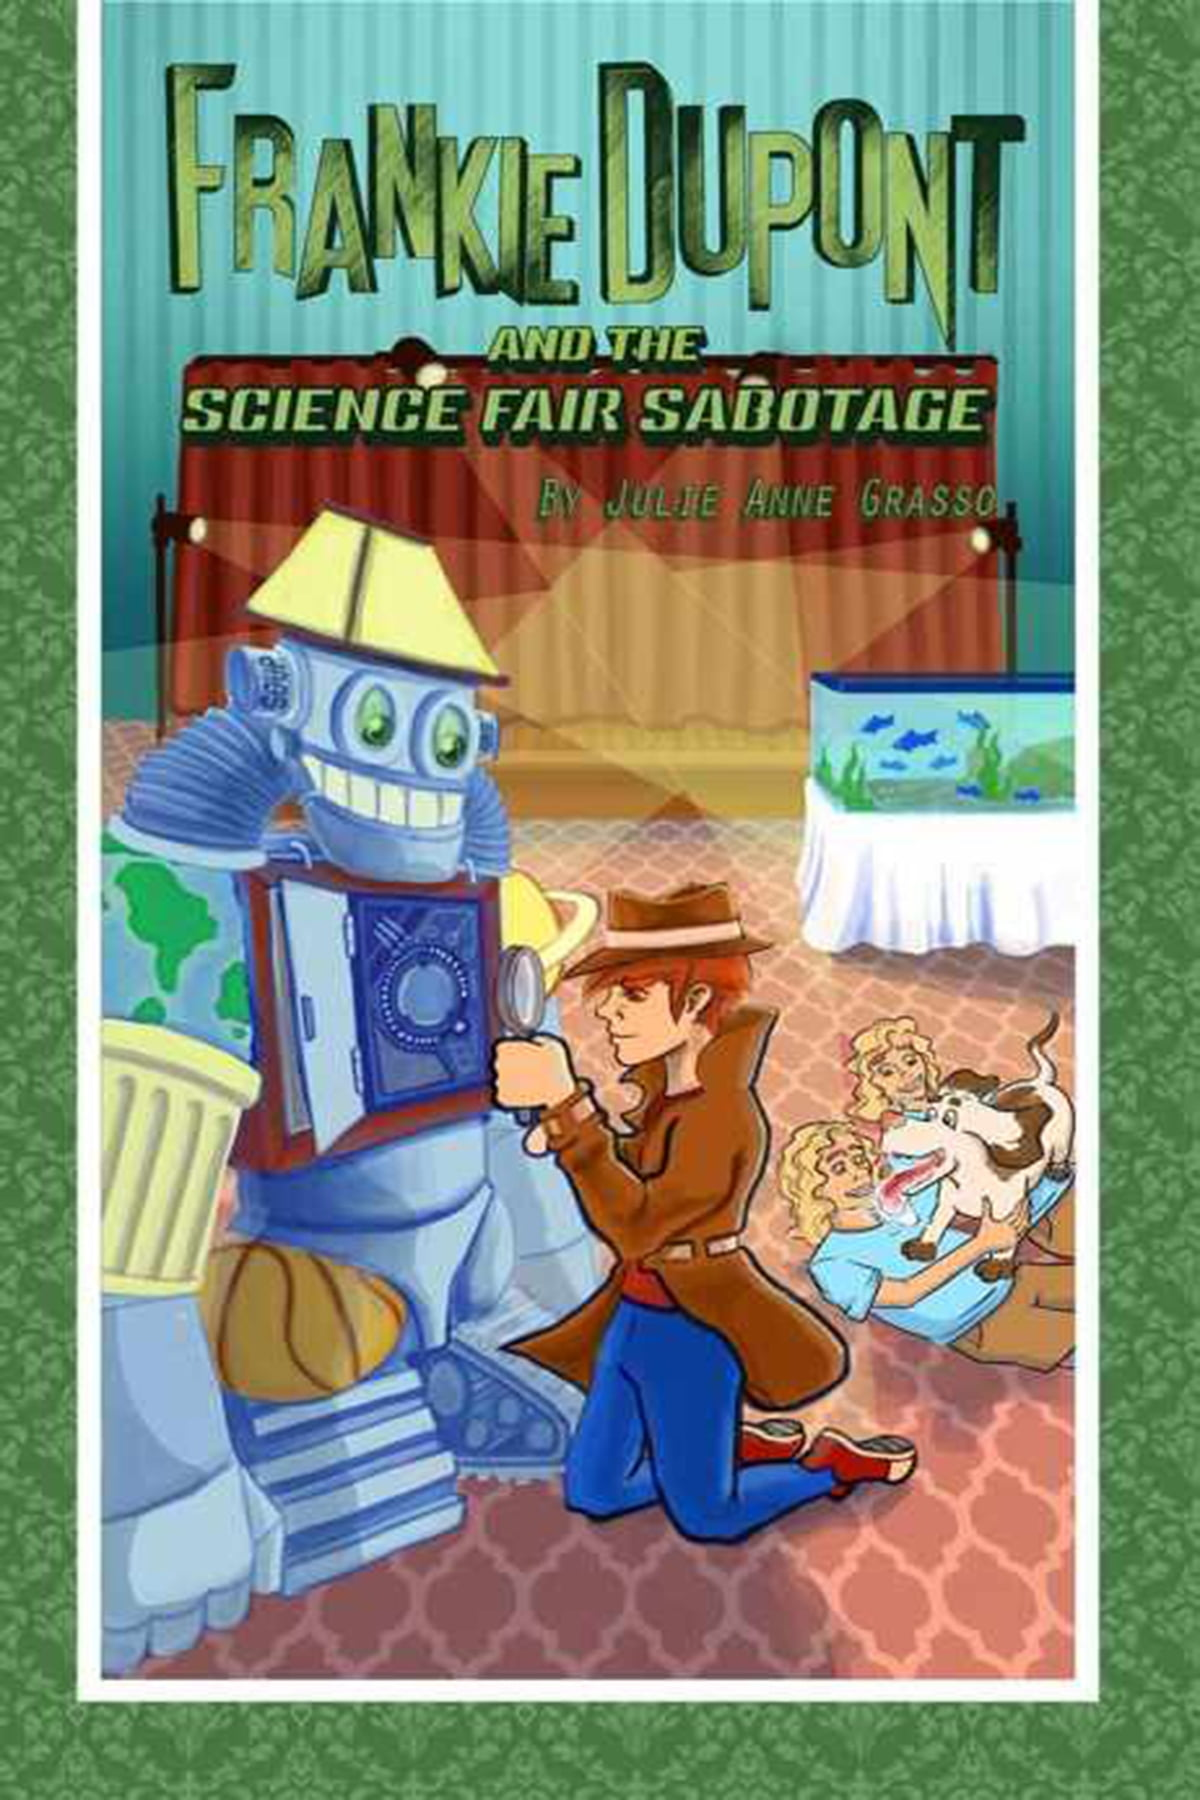 Frankie dupont and the science fair sabotage ebook by julie anne frankie dupont and the science fair sabotage ebook by julie anne grasso 9781946229298 rakuten kobo fandeluxe Image collections